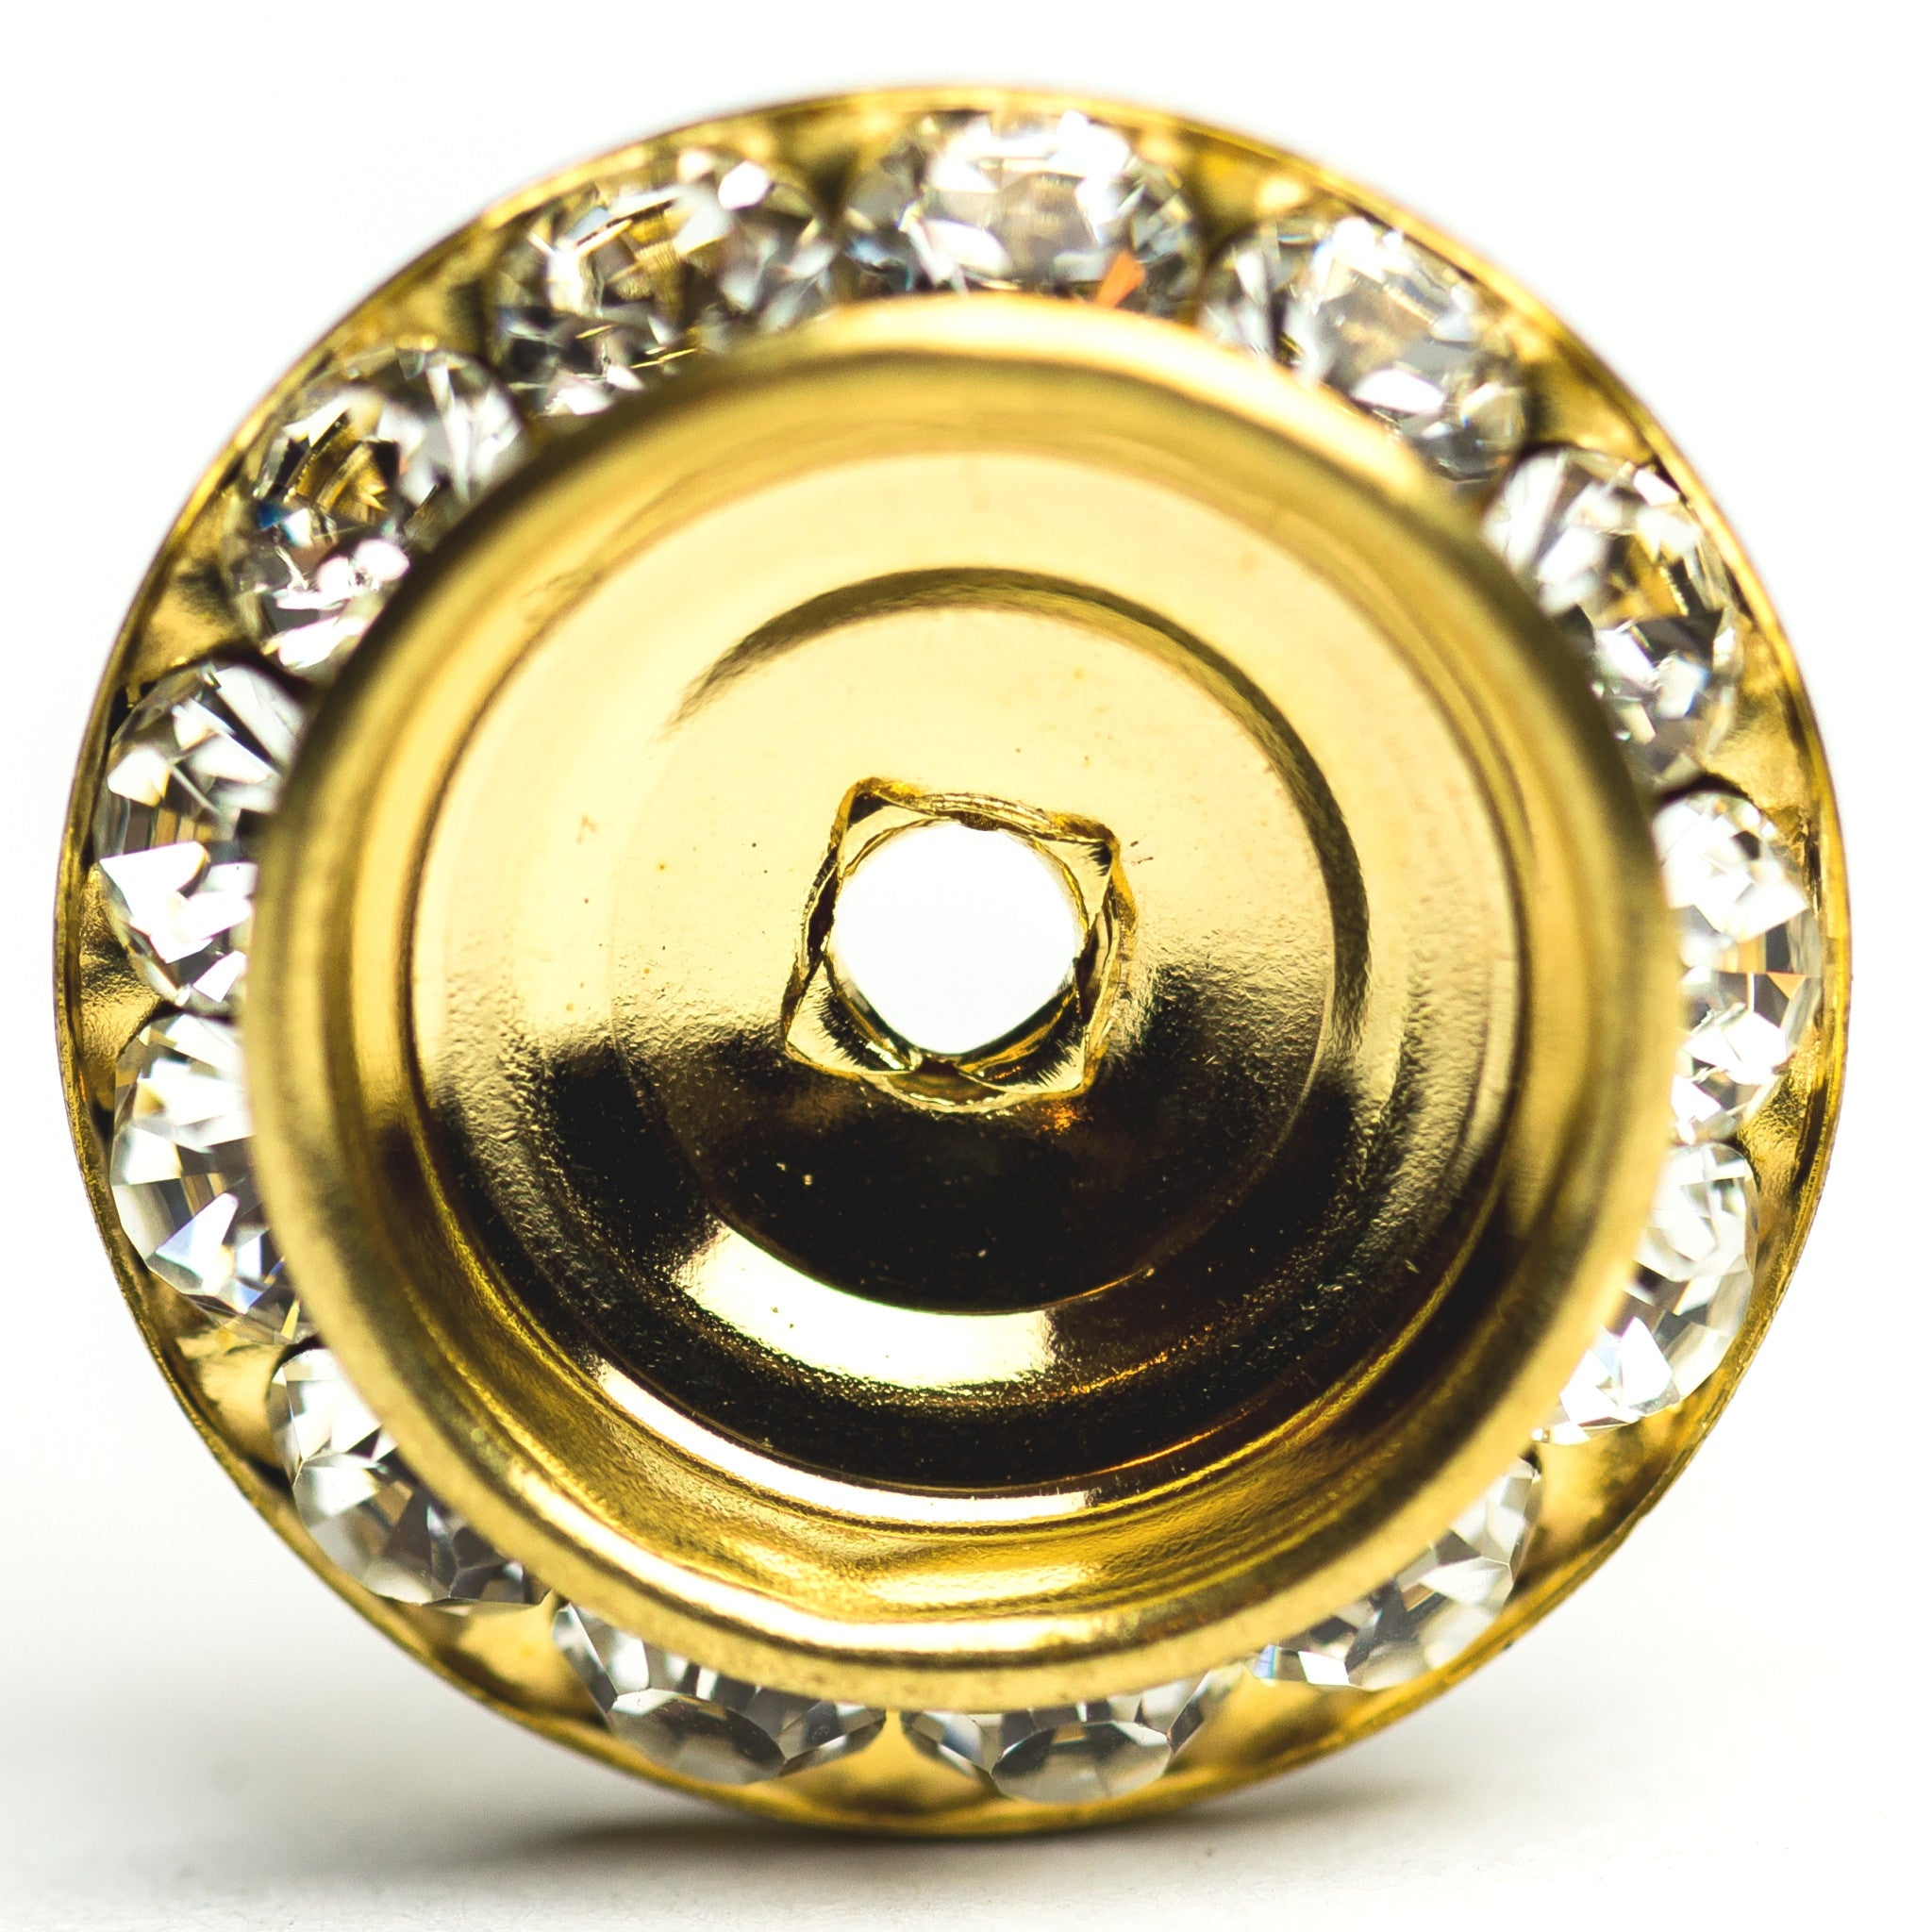 20MM Slant Rondel Crystal/Gold (6 pieces)